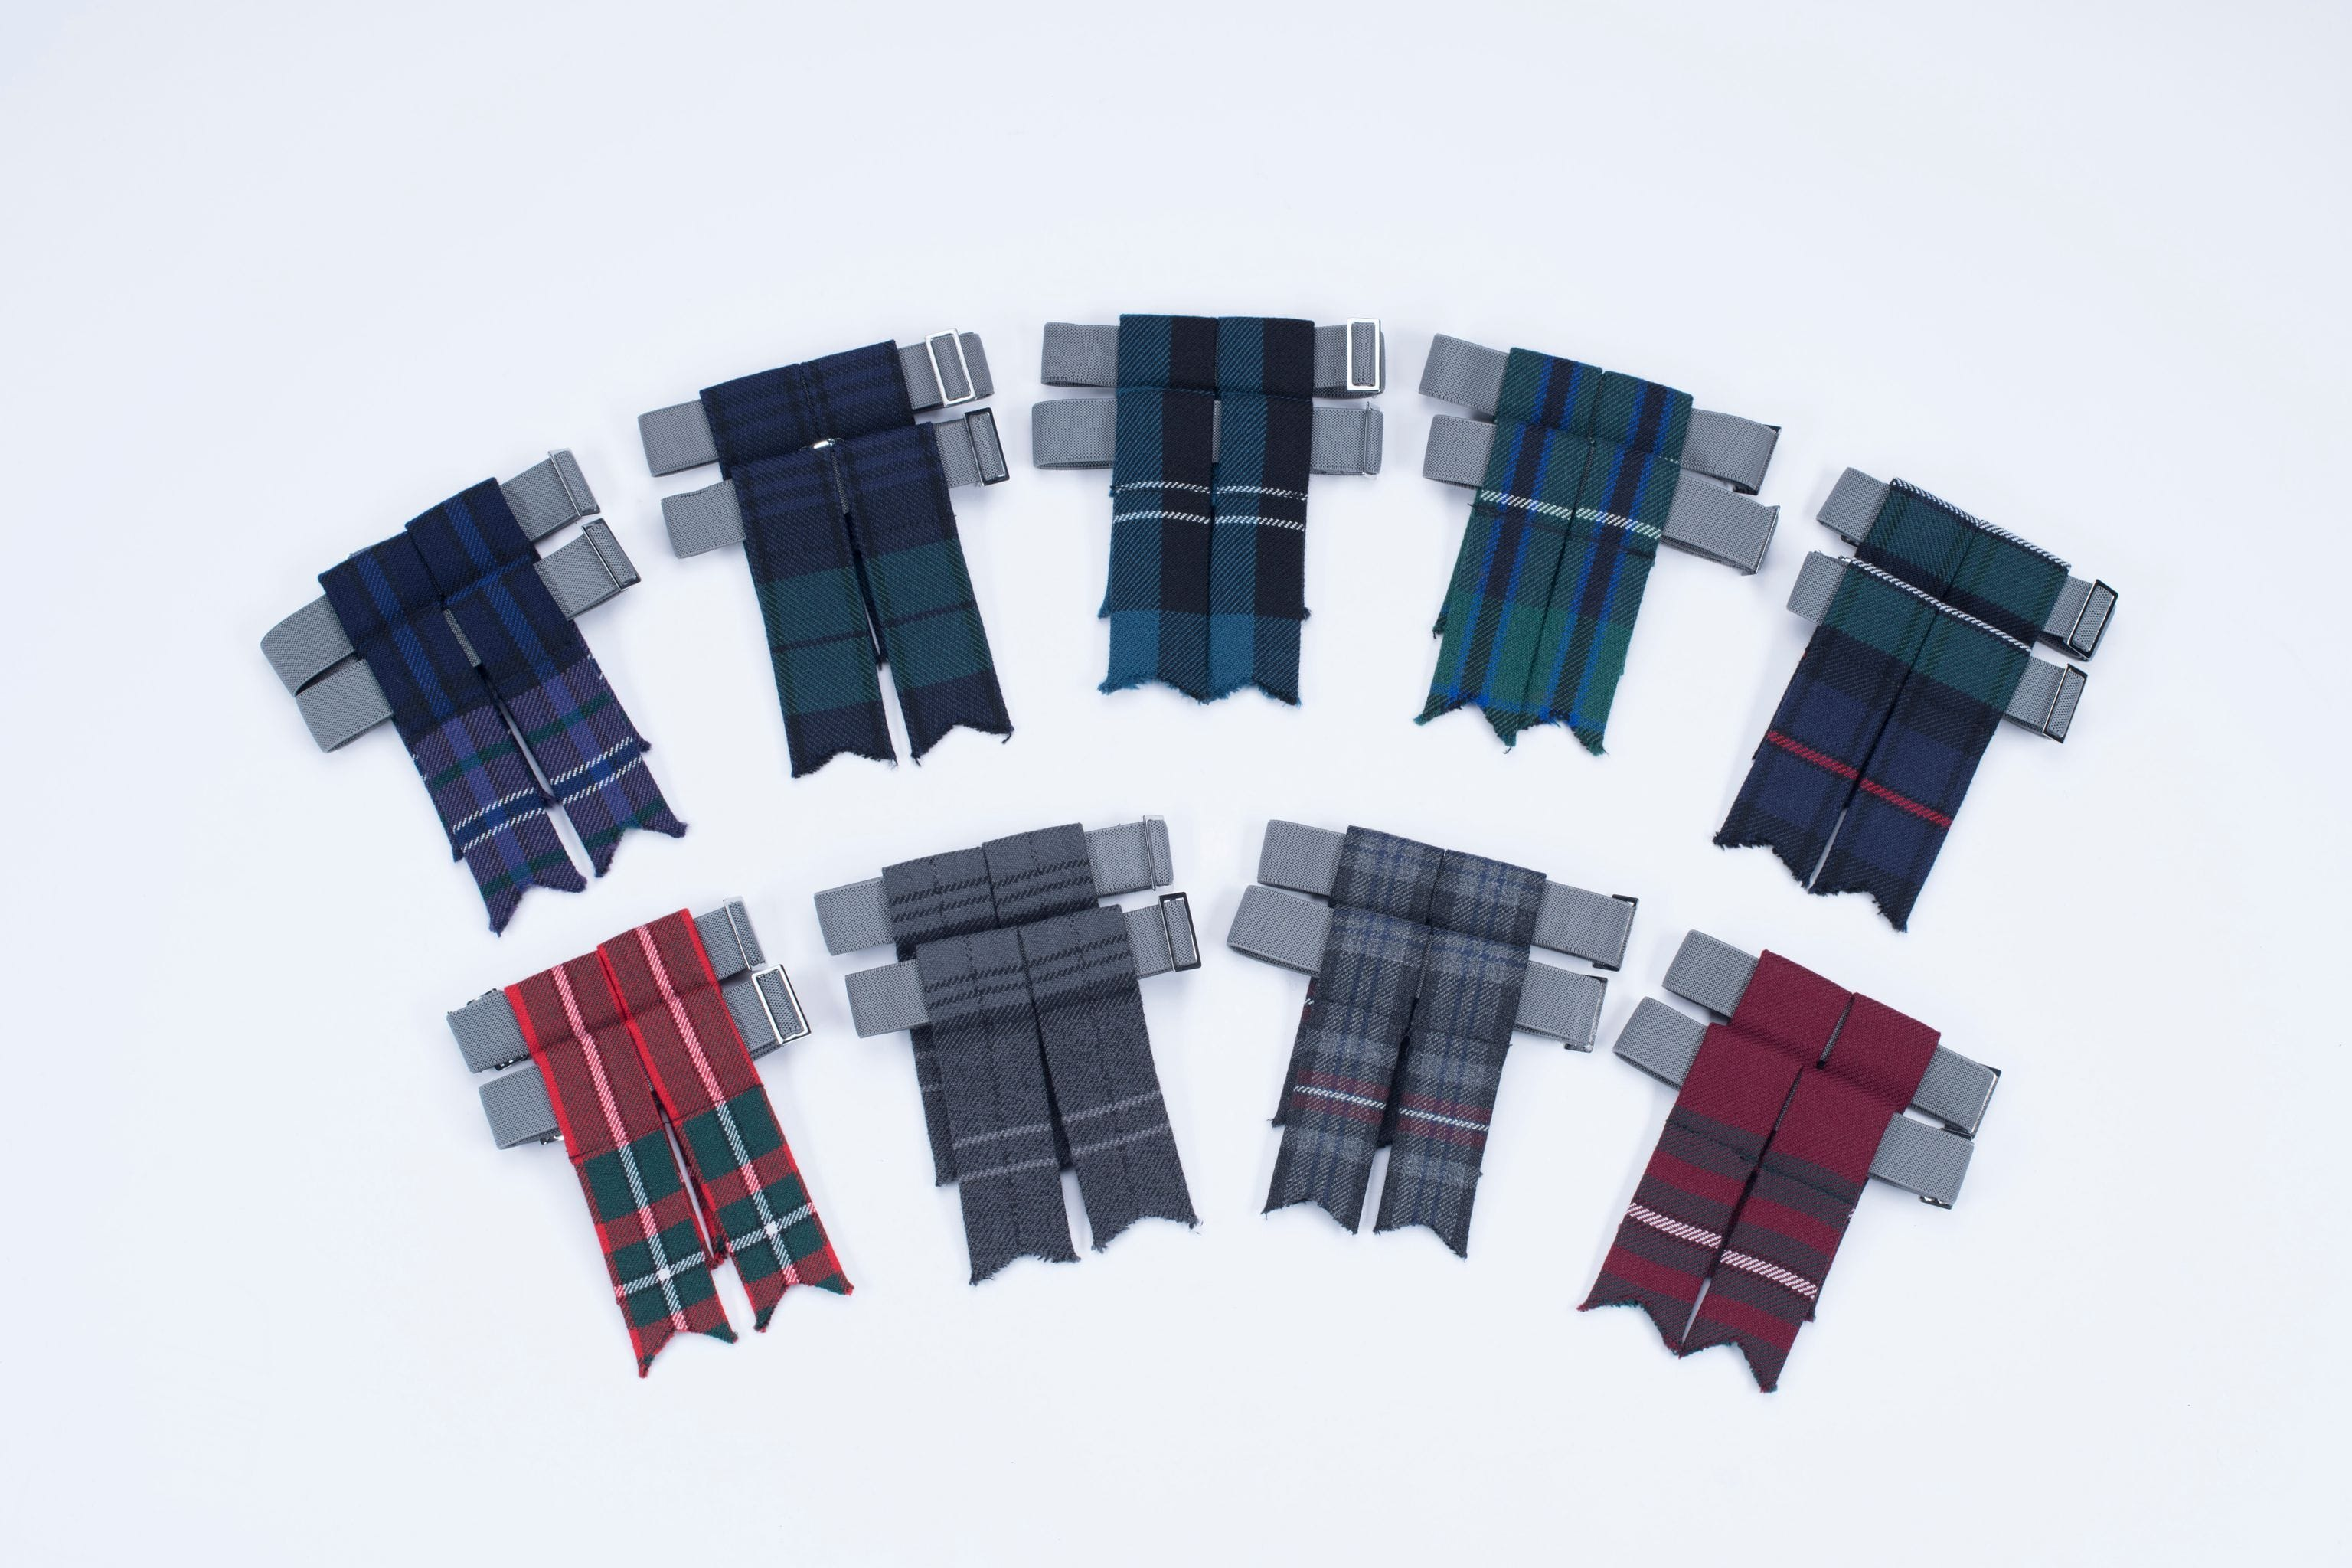 MacGregor MacDuff Kilt Outfit Prince Charlie Kilt Outfit Starter Package - Choose from 100 tartans